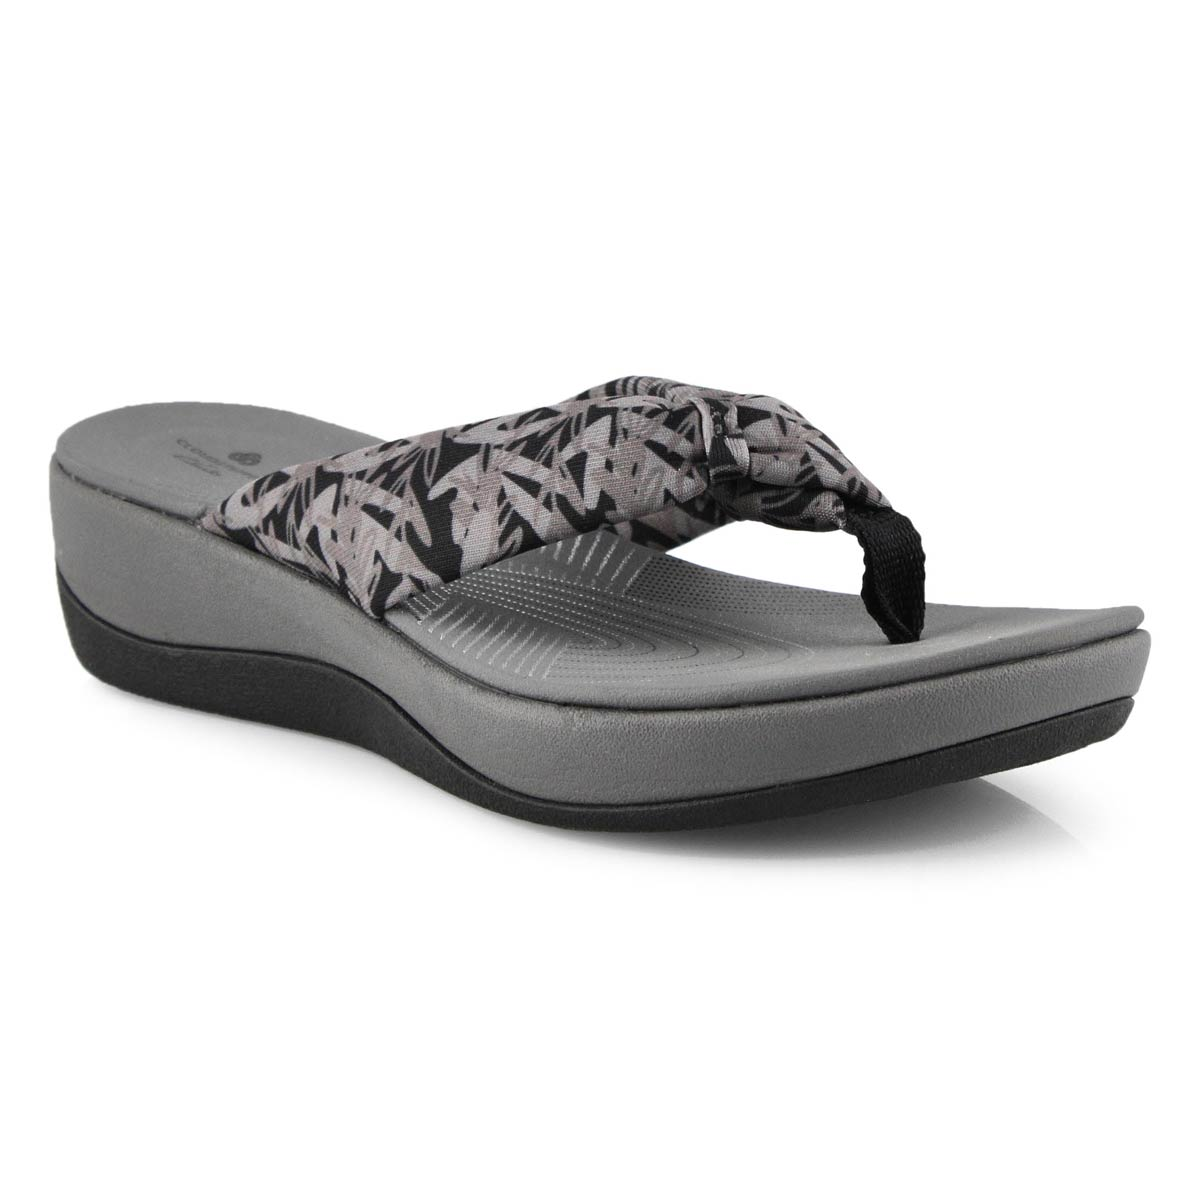 Lds Arla Glison floral bk/gry wedge sndl